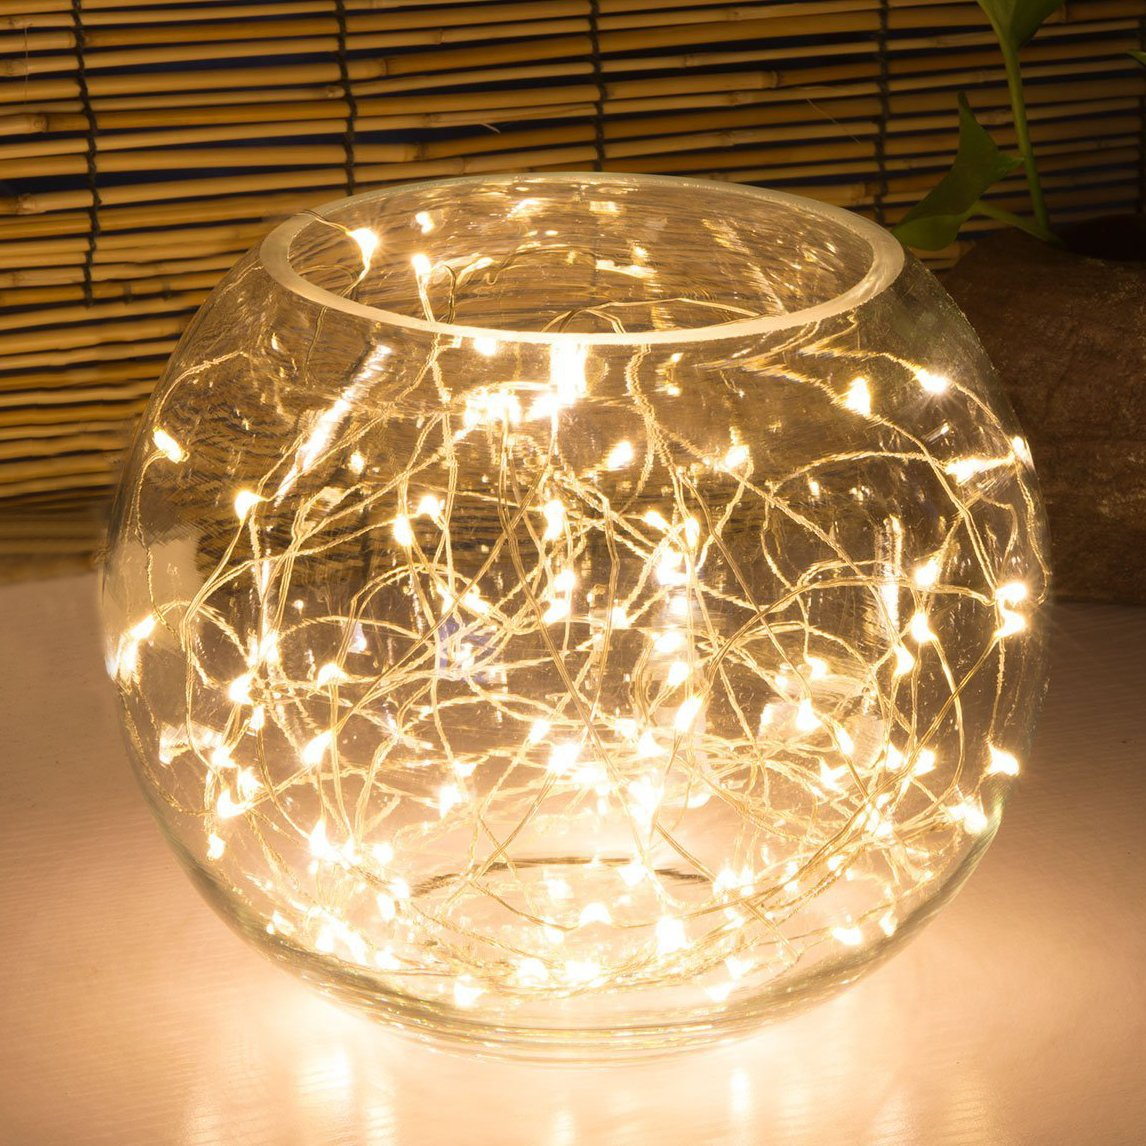 Oak leaf 60 led starry fairy string lights silver wire battery oak leaf 60 led starry fairy string lights silver wire battery operated 98ft warm white amazon aloadofball Image collections